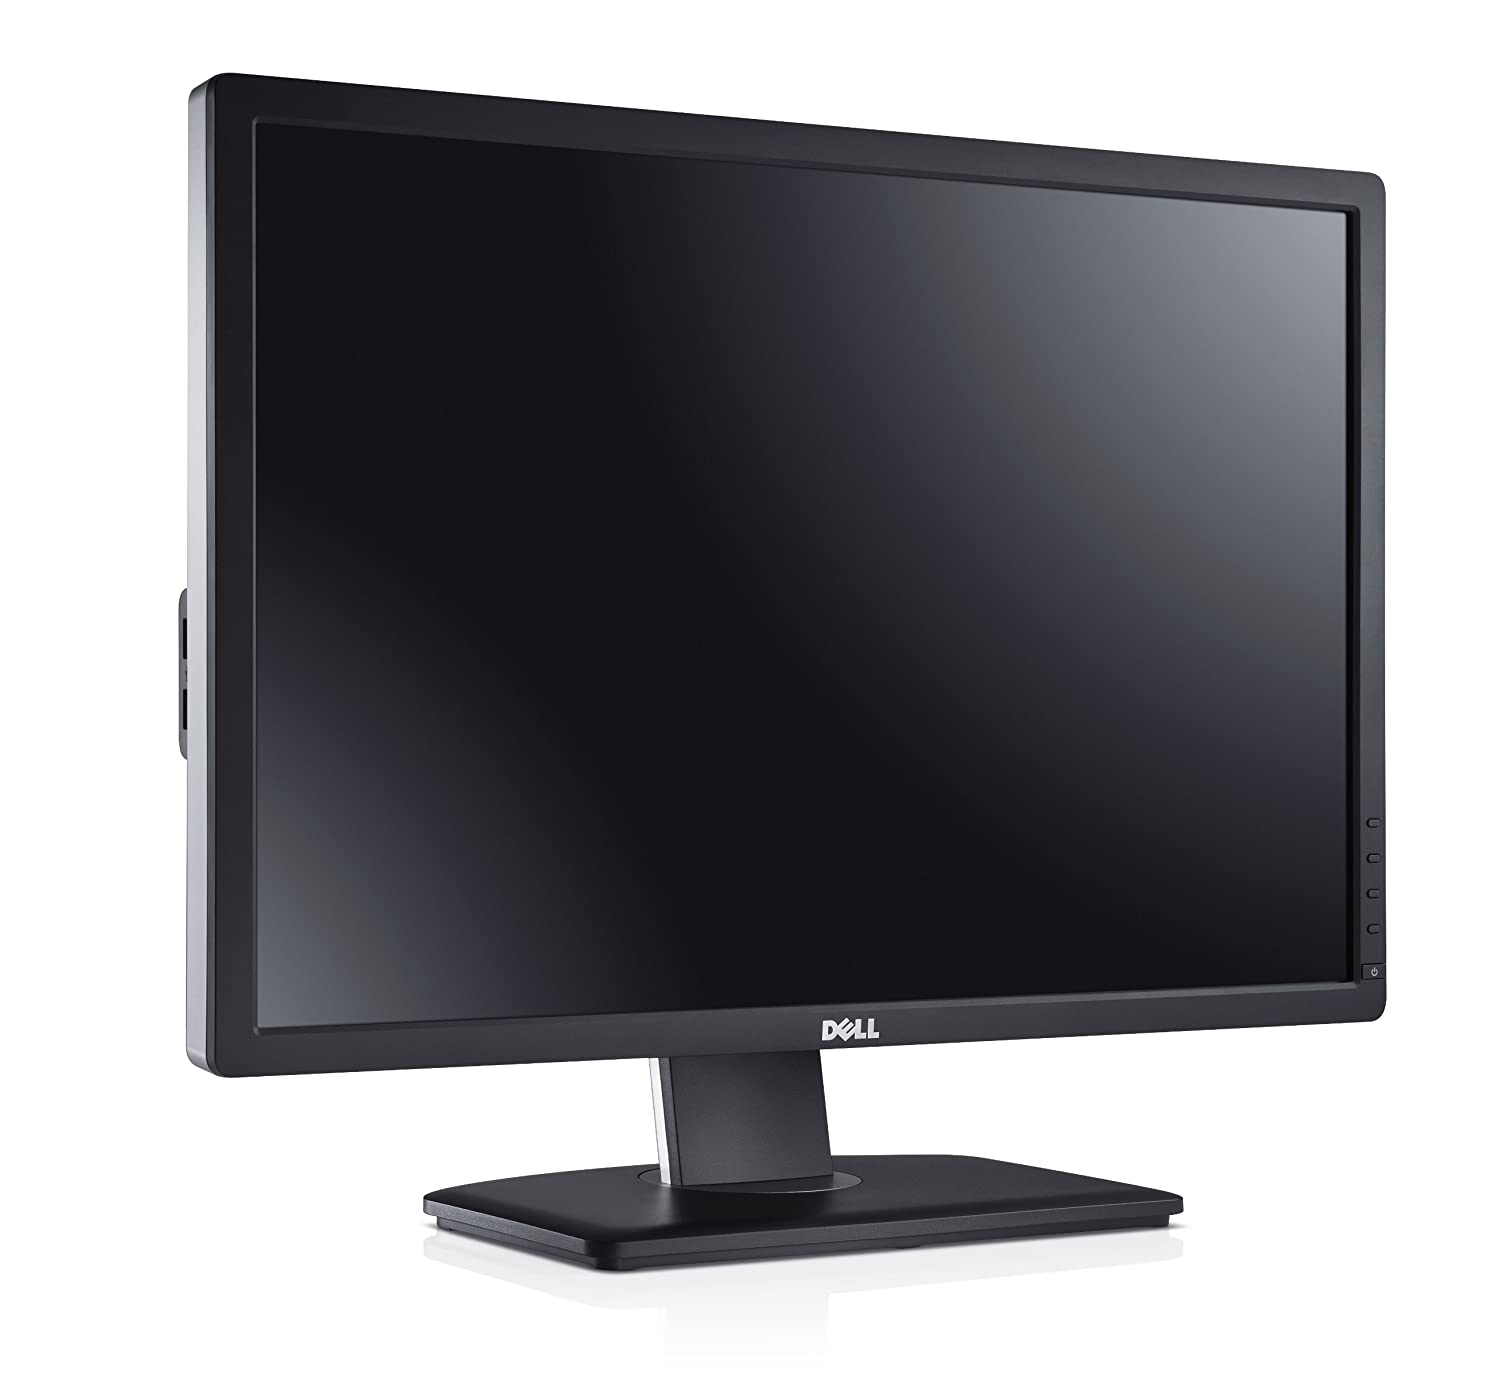 Dell UltraSharp U2412M 24″ LED LCD Monitor – 16:10 – 8 ms ,$278.99